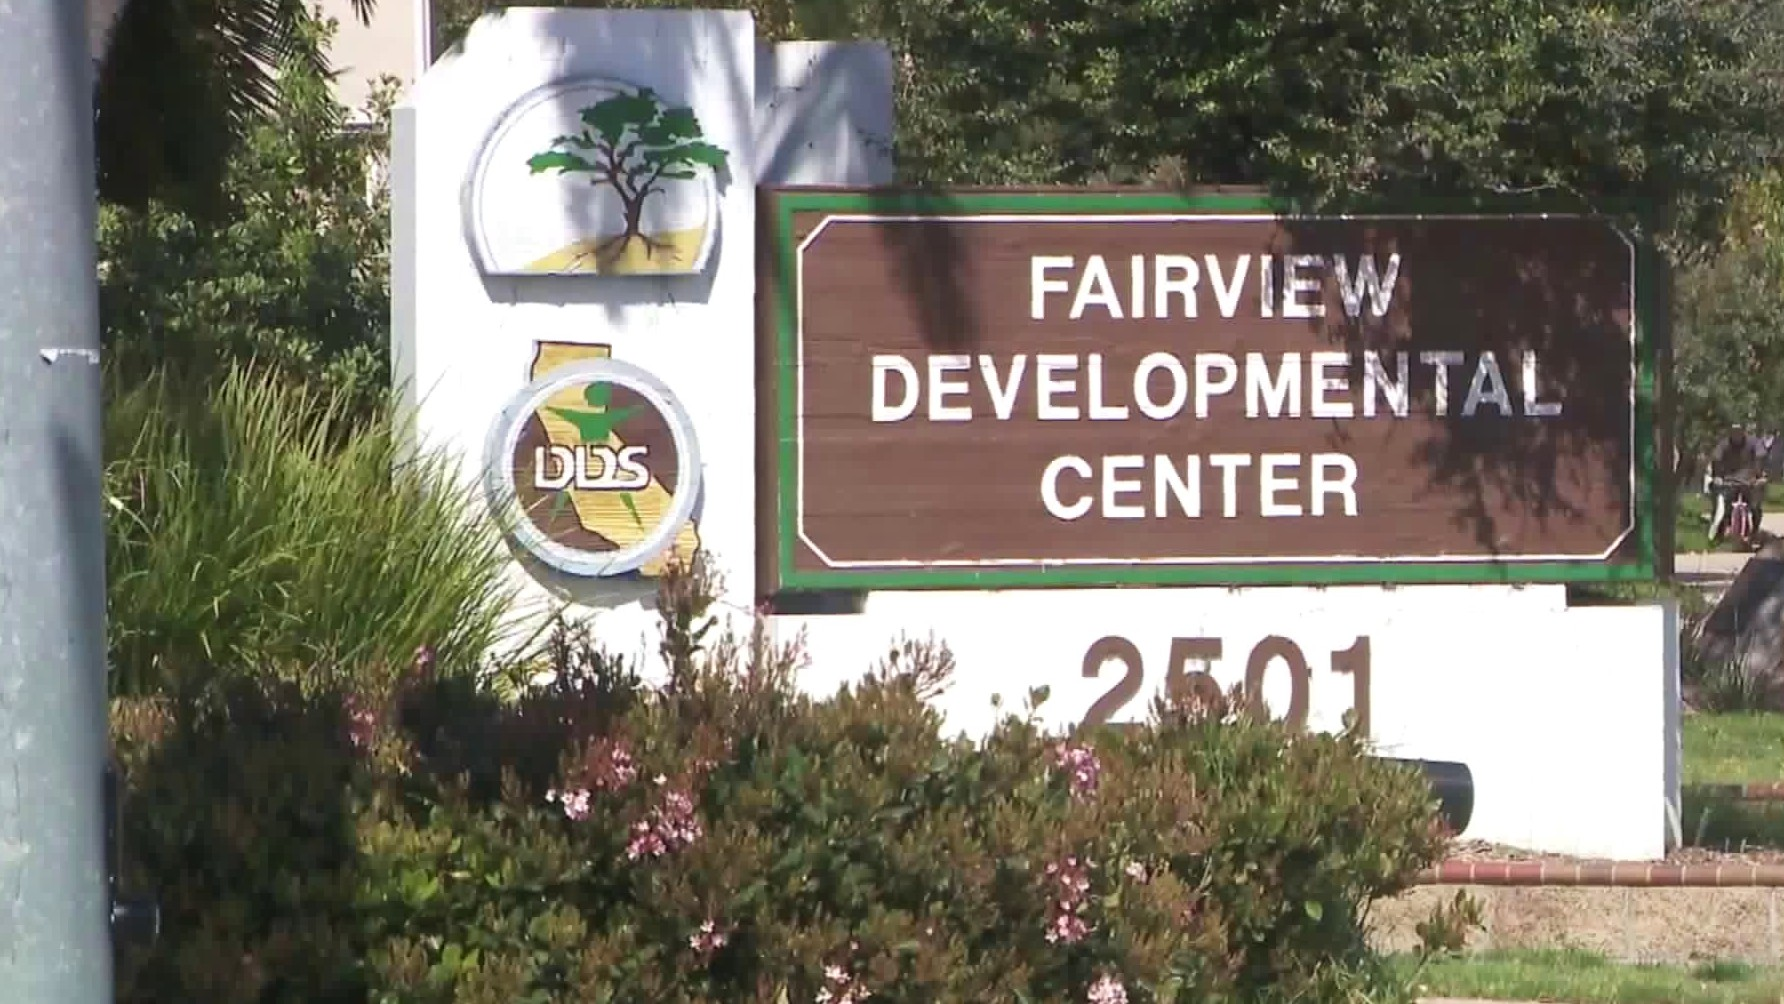 Fairview Developmental Center is seen in this file photo. (KTLA)